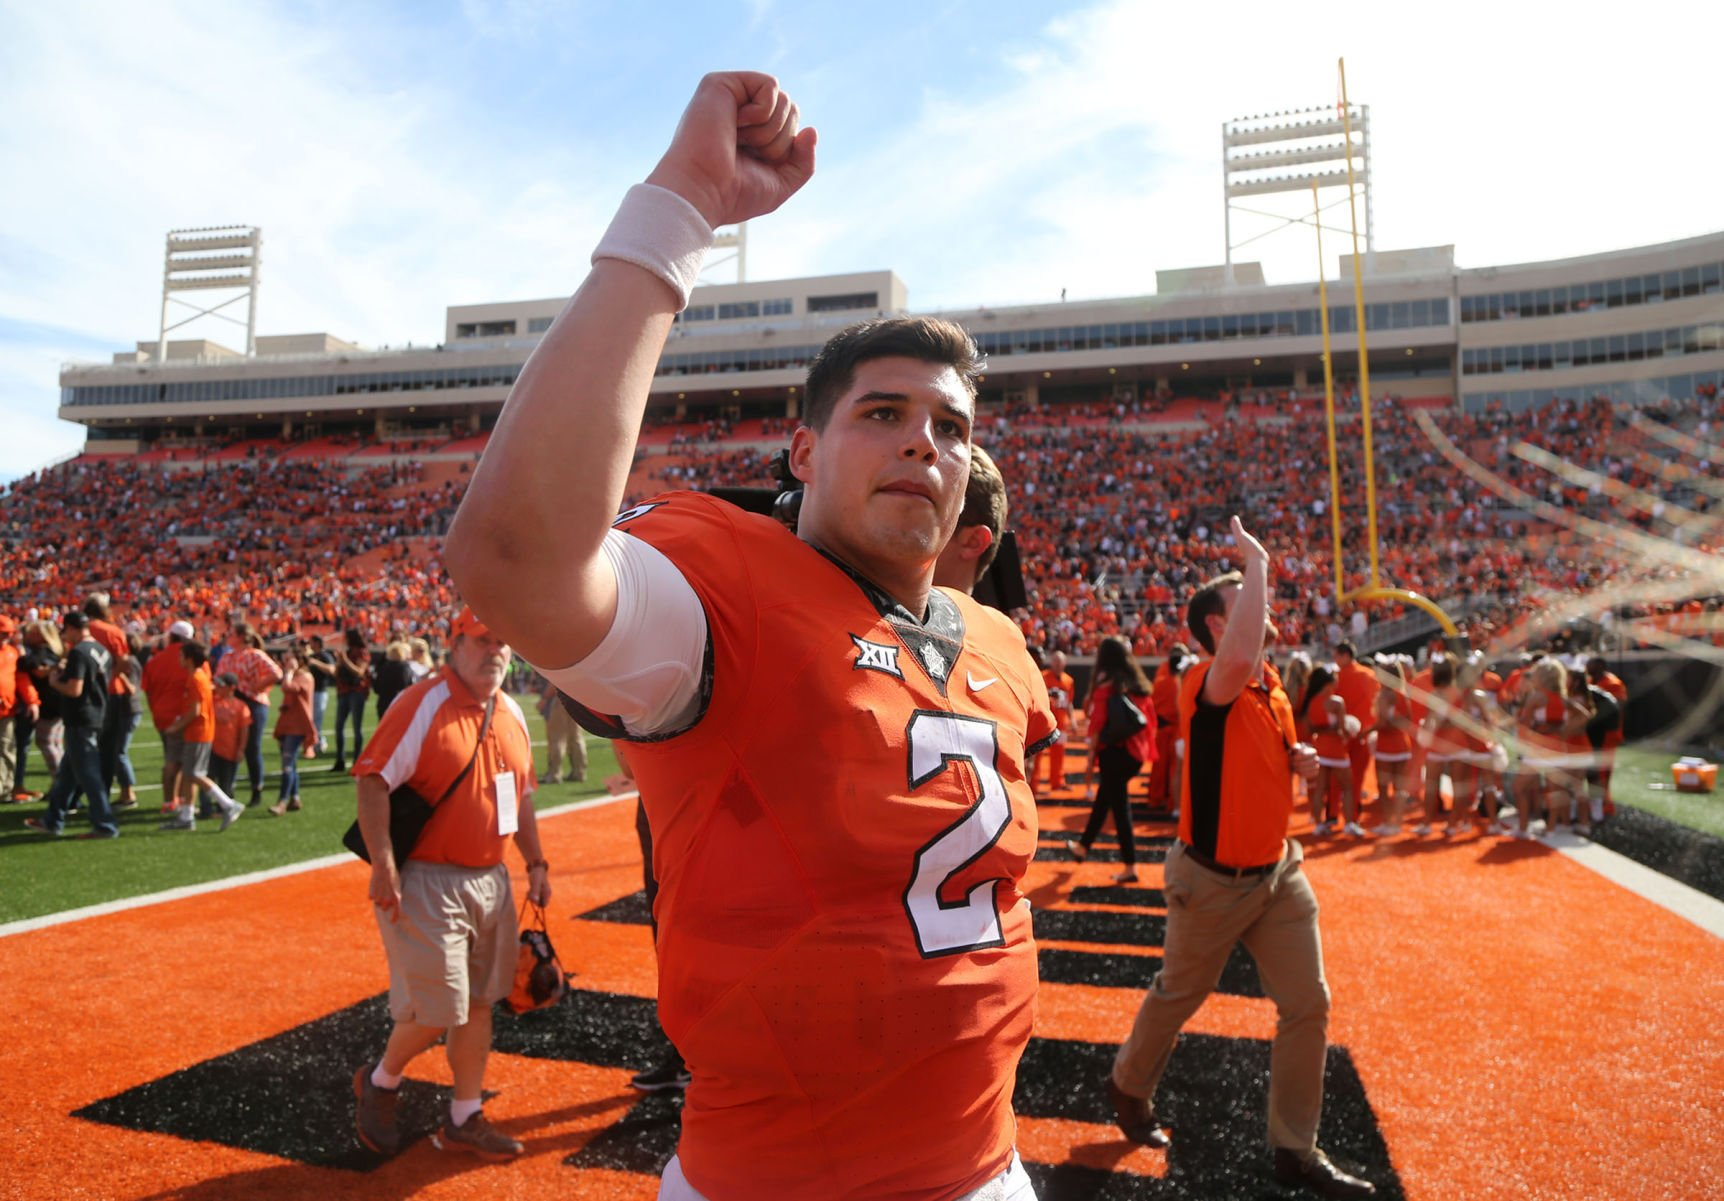 Oklahoma State's Mason Rudolph Magically Escapes Tacklers, Throws 69-Yard TD